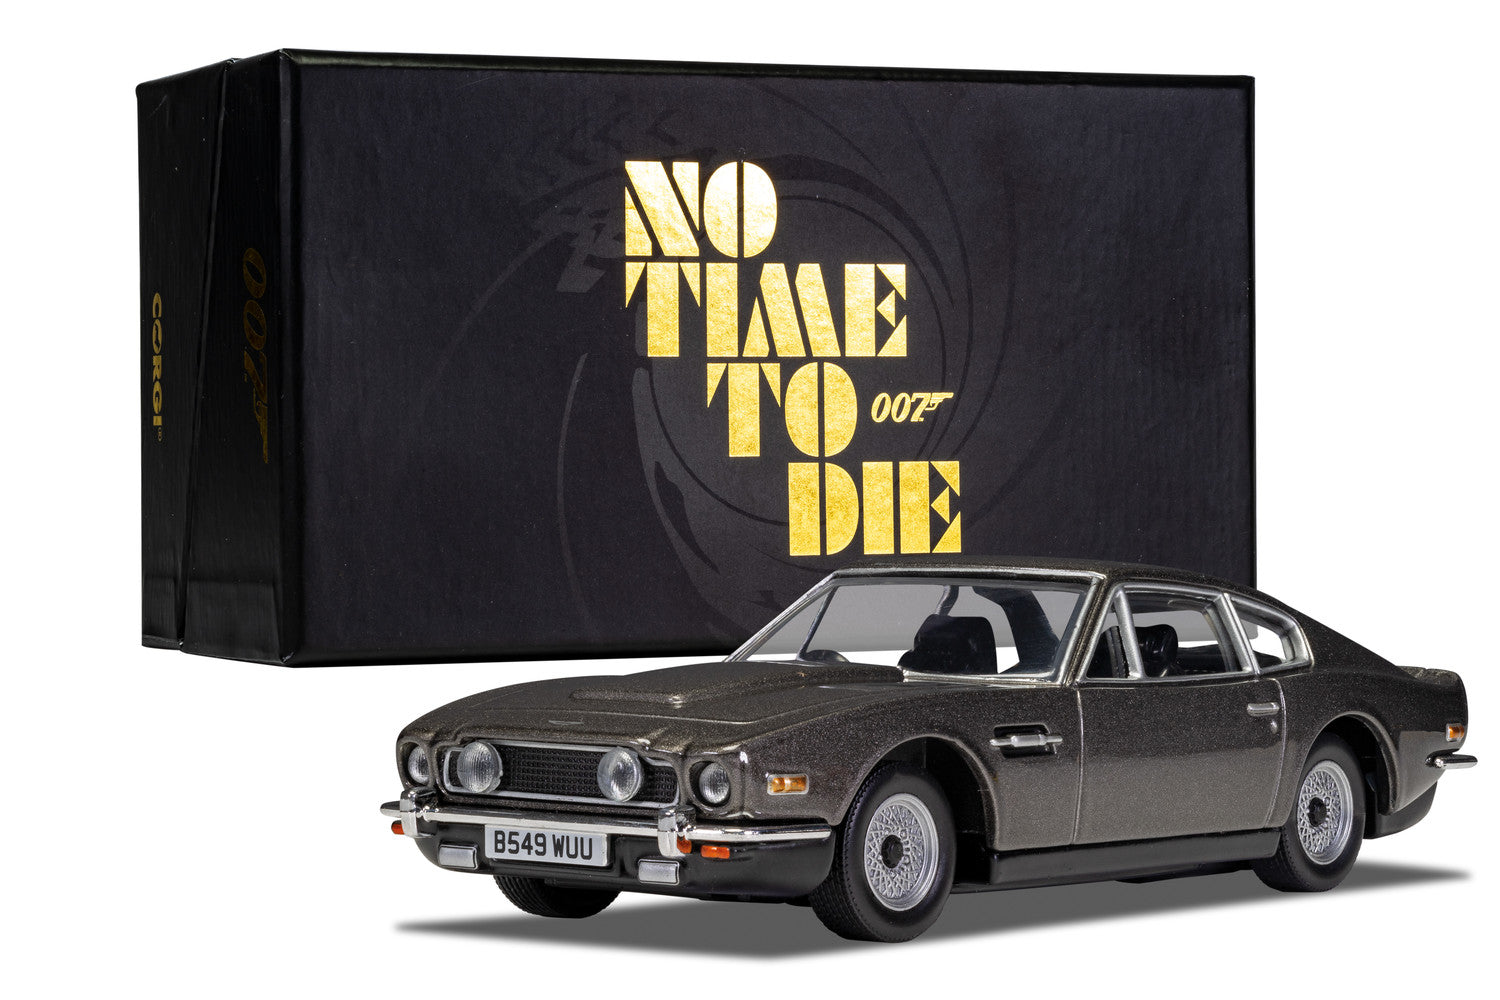 James Bond Aston Martin V8 Vantage Model Car - No Time To Die Edition - By Corgi (Pre-order)